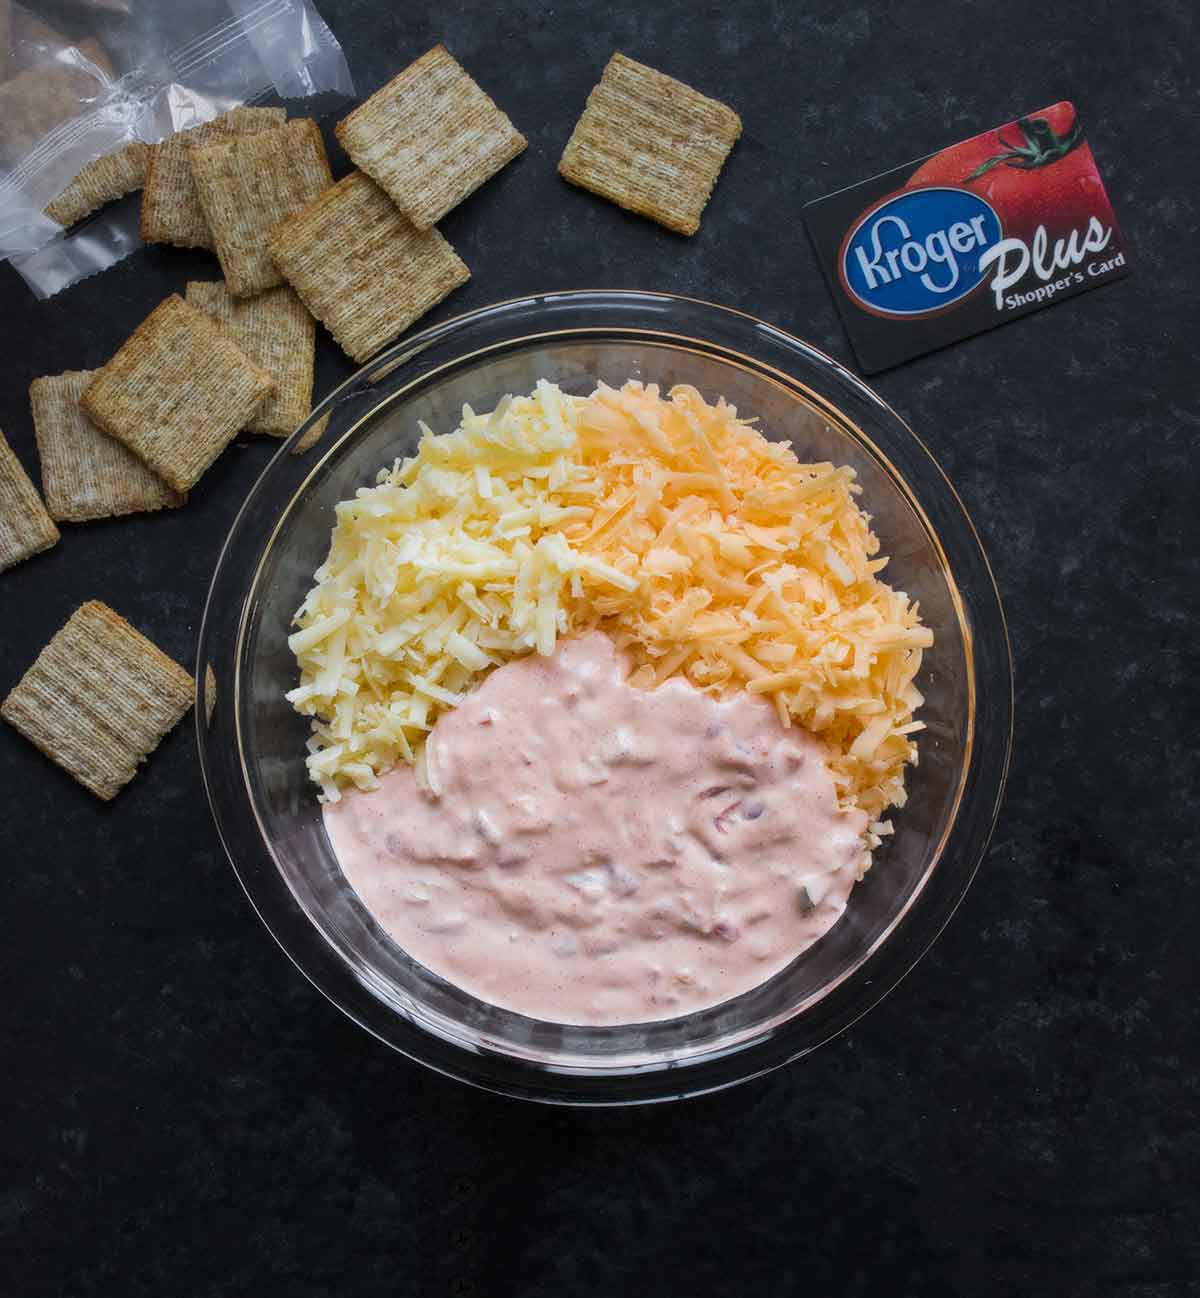 Cheeses and sauce for Spicy Pimento Cheese